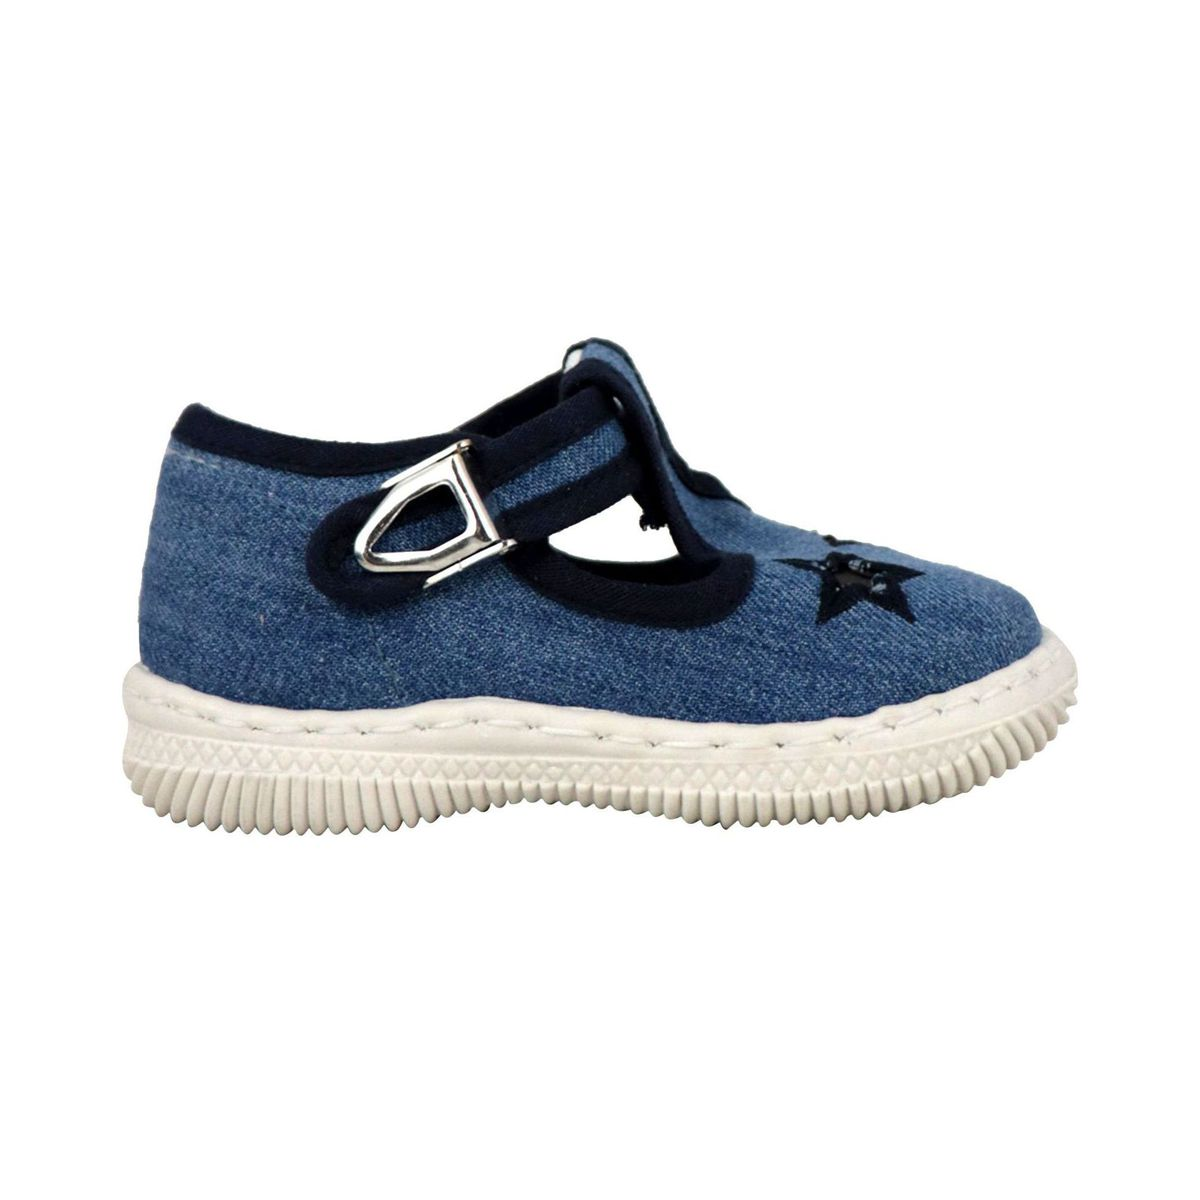 Denim shoe with eyes Blue jeans 2Star